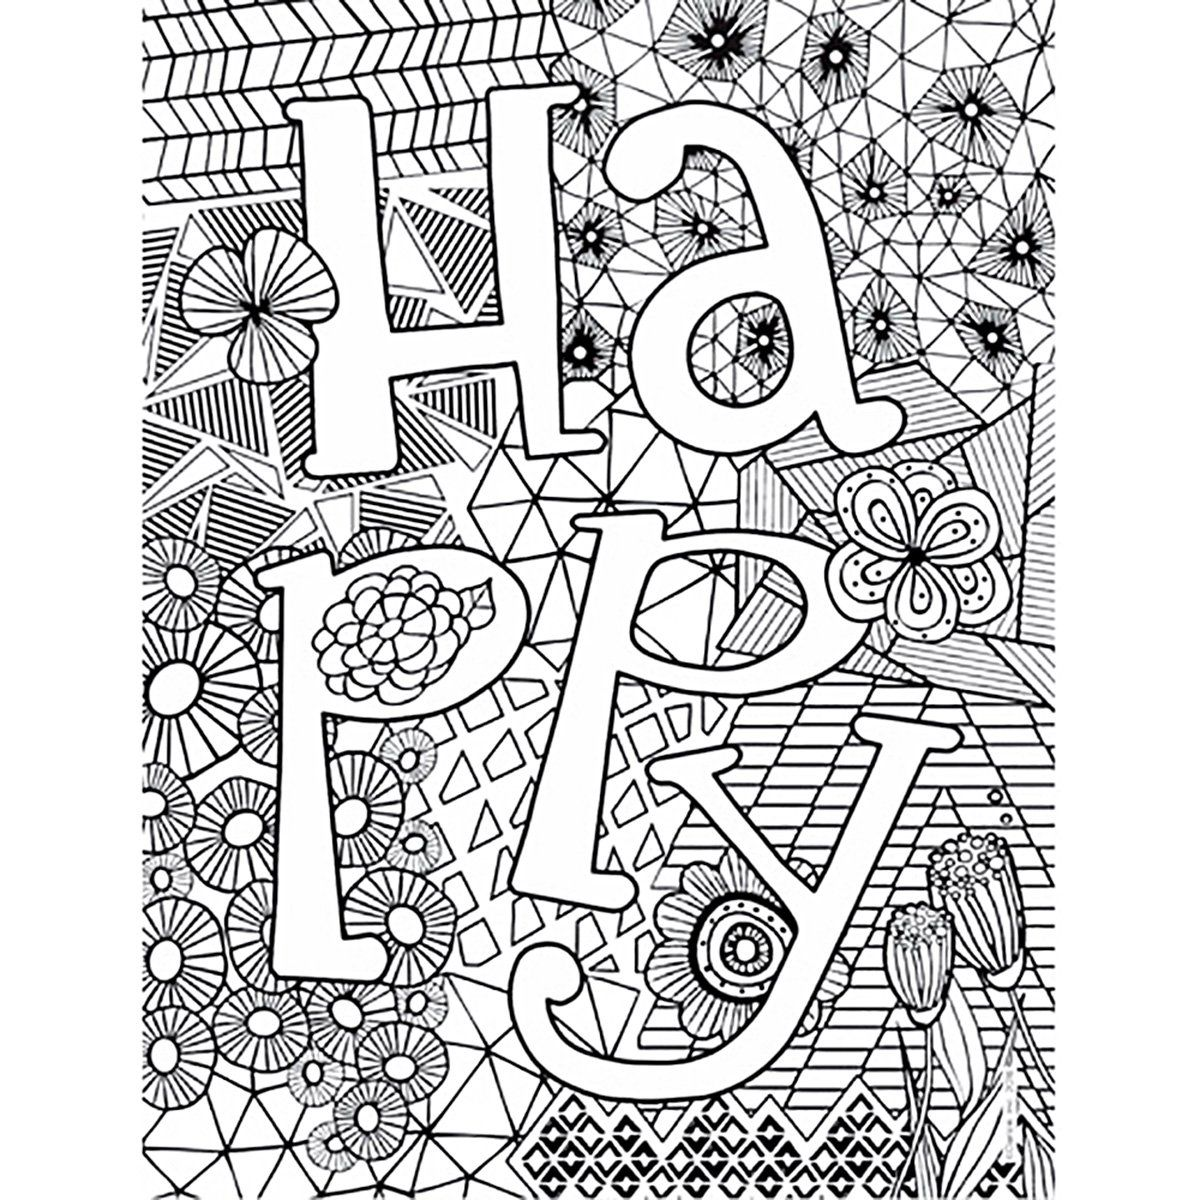 Keep A Creative Soul Young And Inspired With The Happy Coloring Poster From Our Bright Bold Collection This P Coloring Books Coloring Posters Coloring Pages